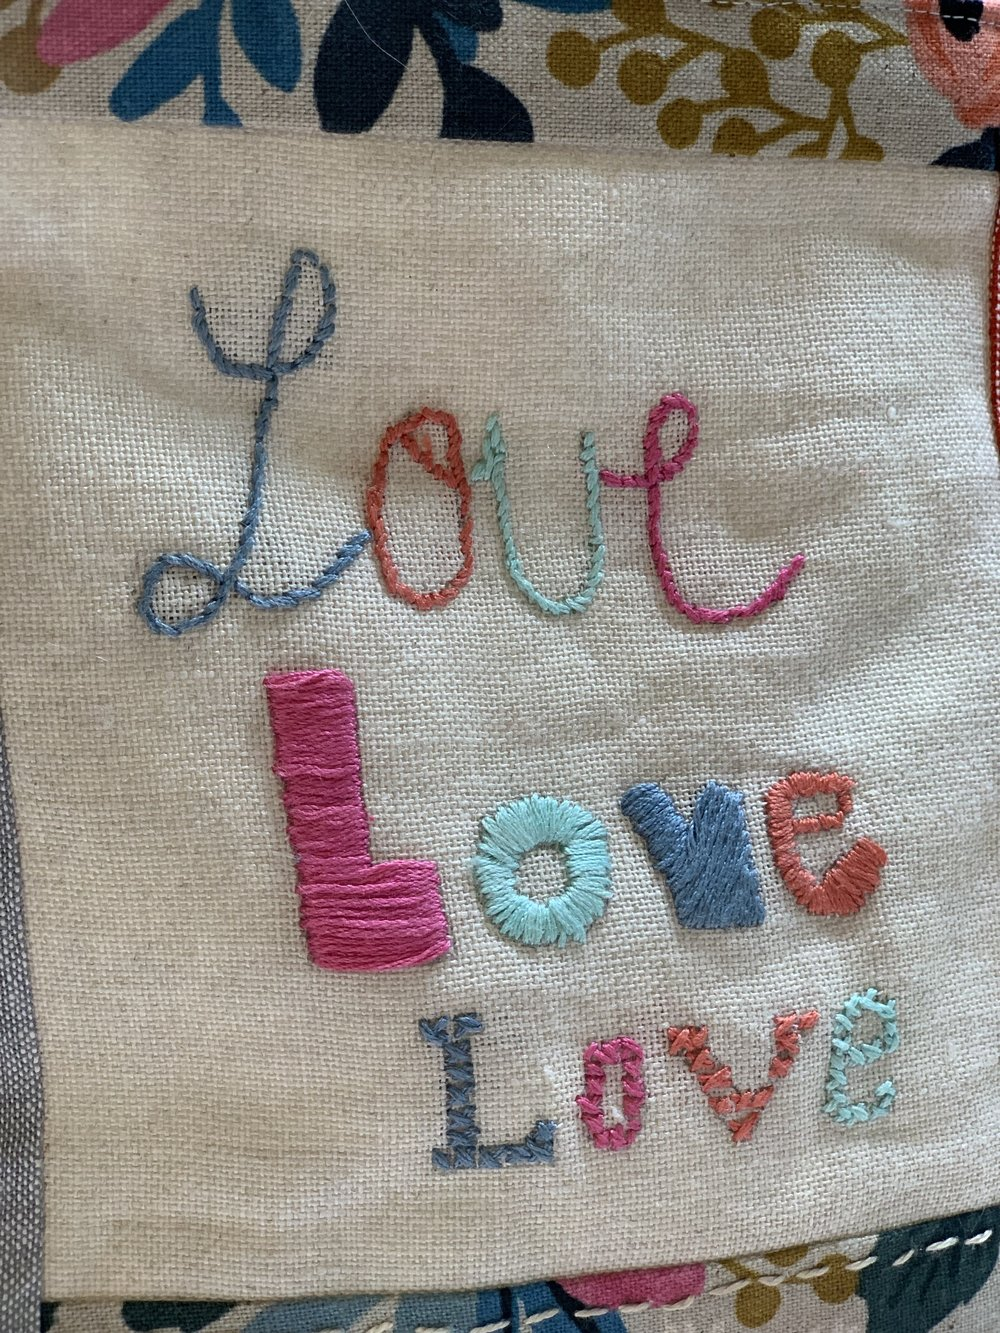 LOVE letters embroidered